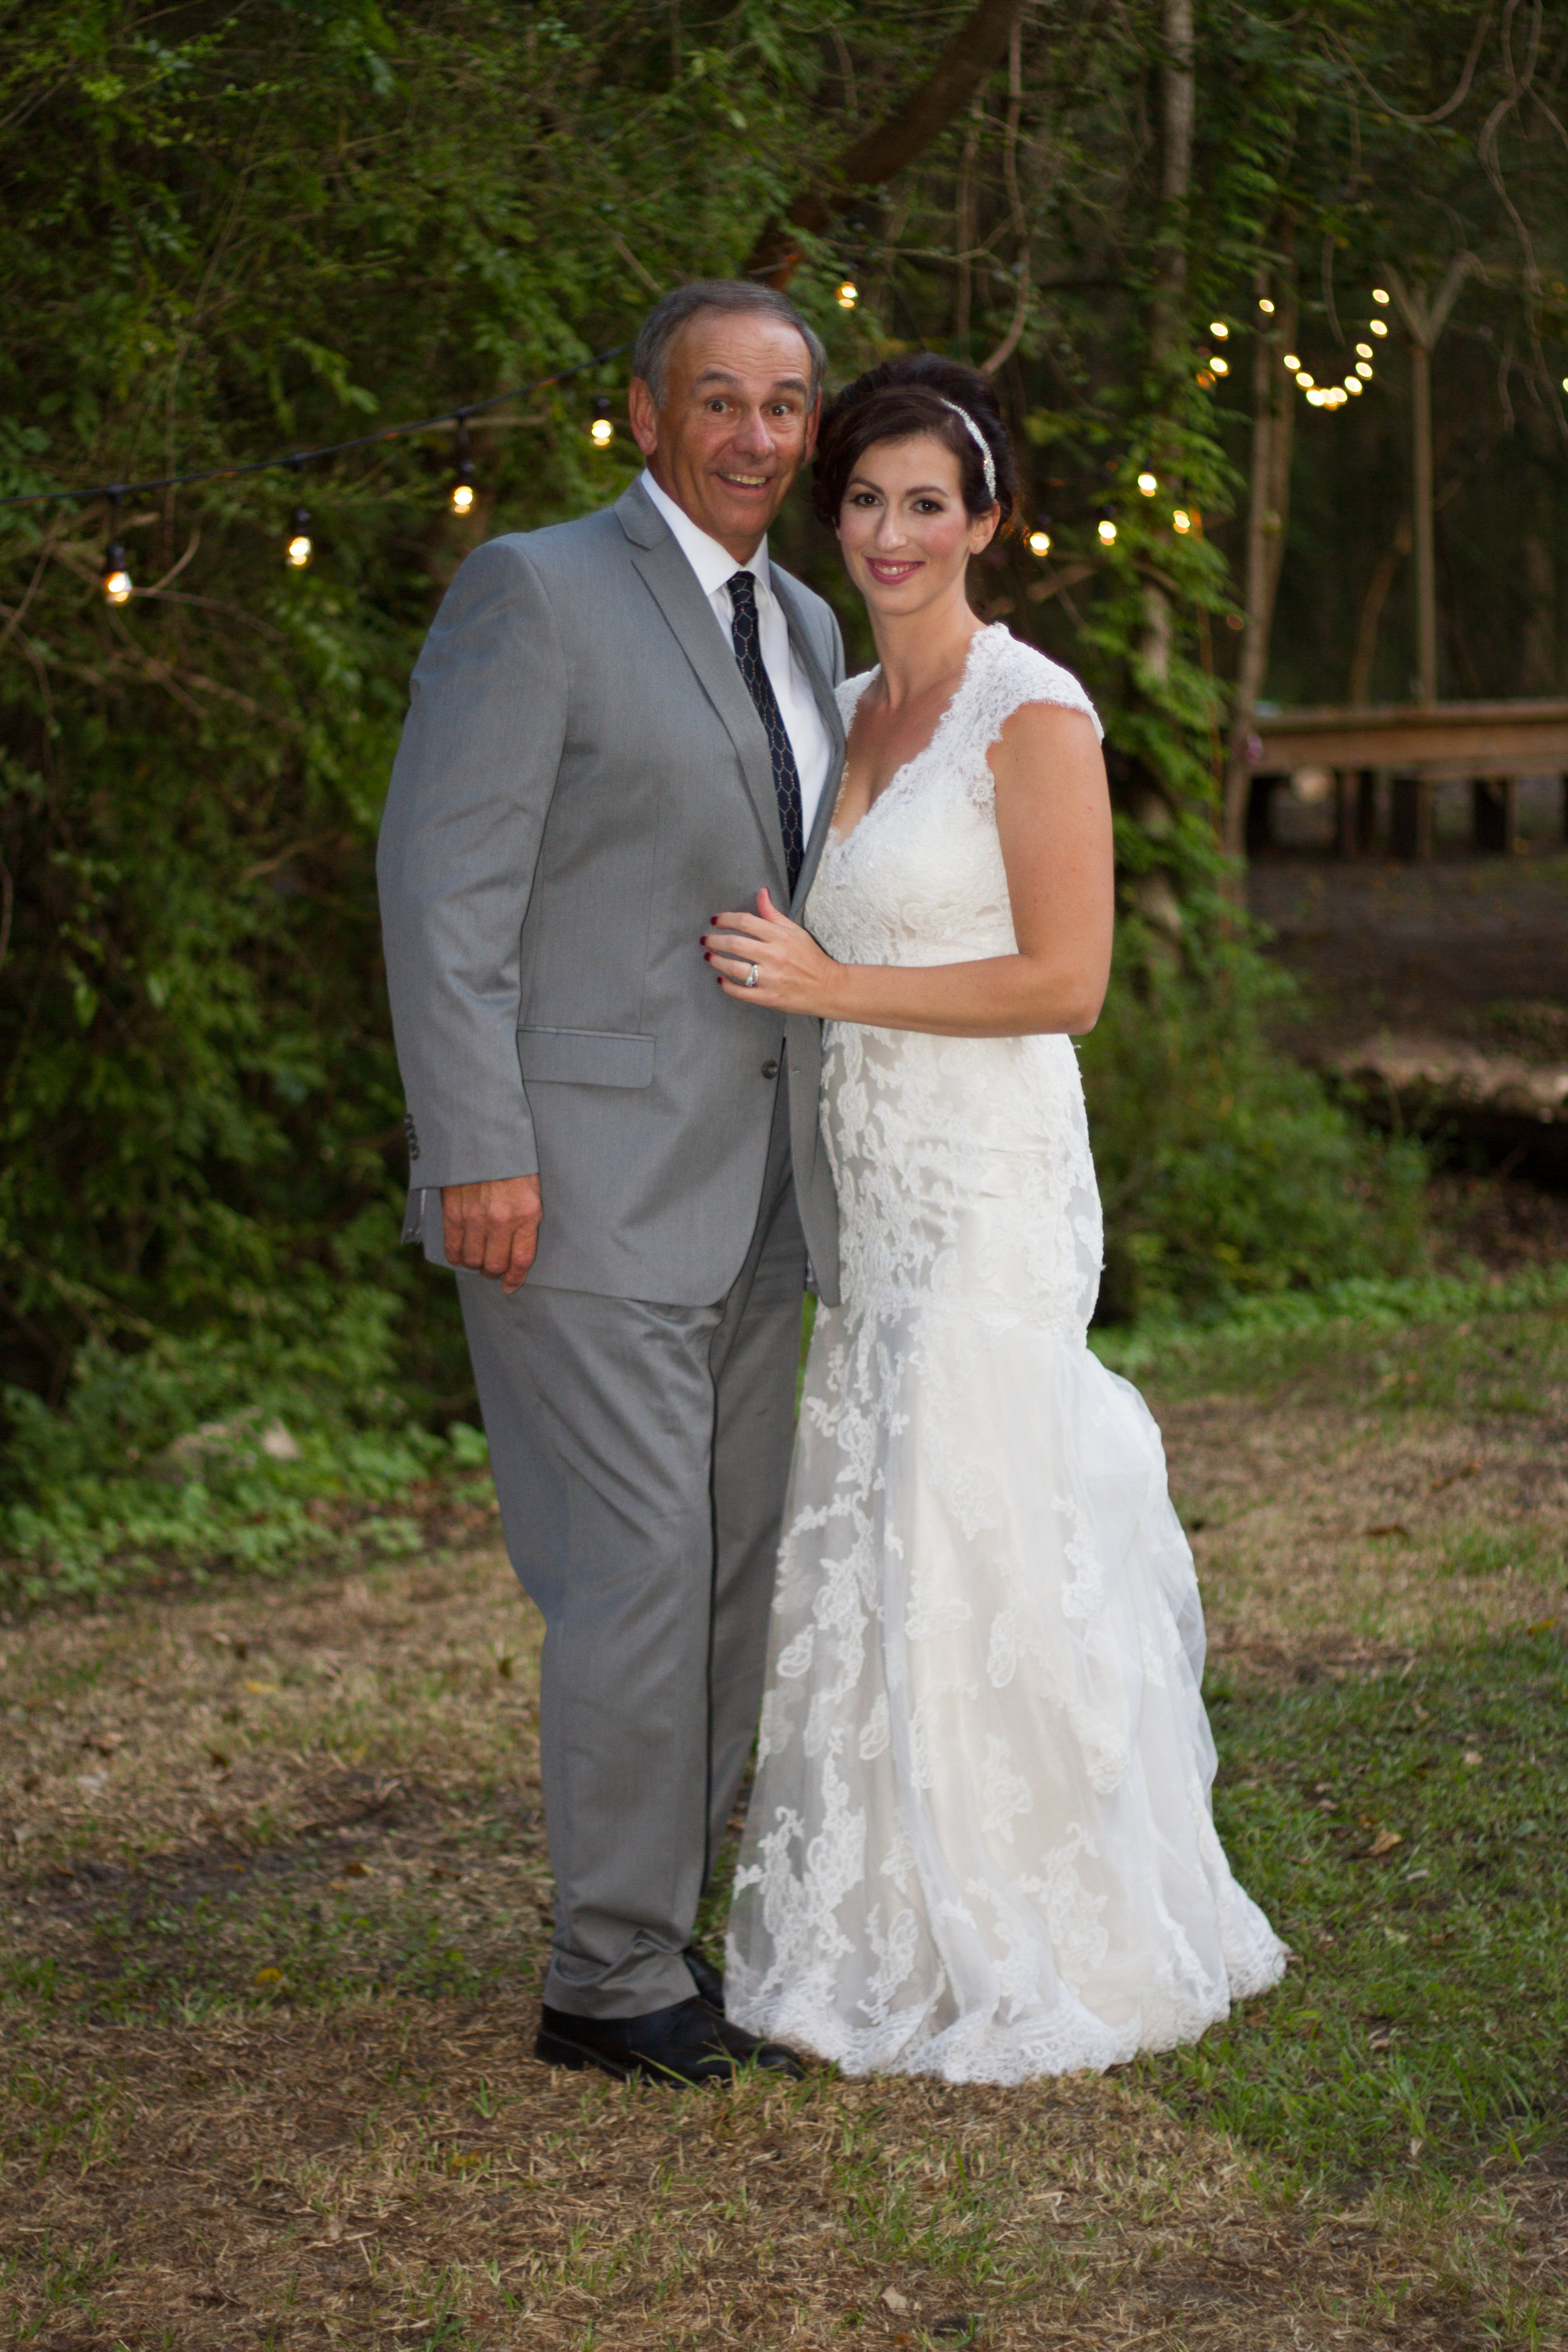 Jacqueline and Shawn Wedding (401 of 597).jpg